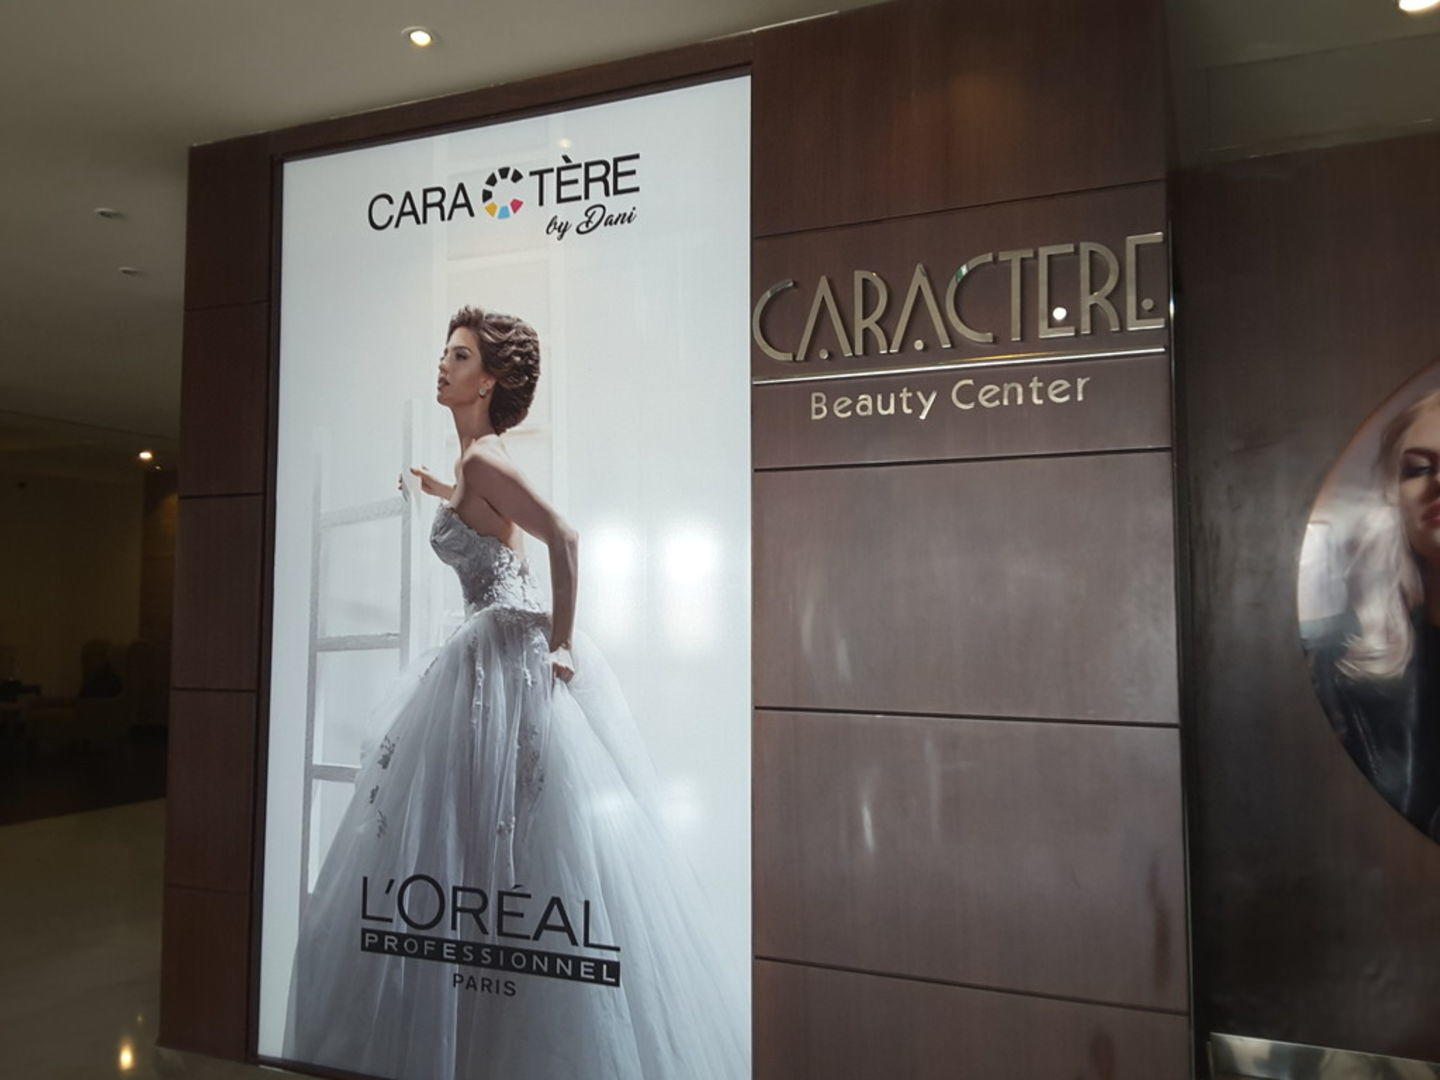 Caractere Beauty Center Dubai